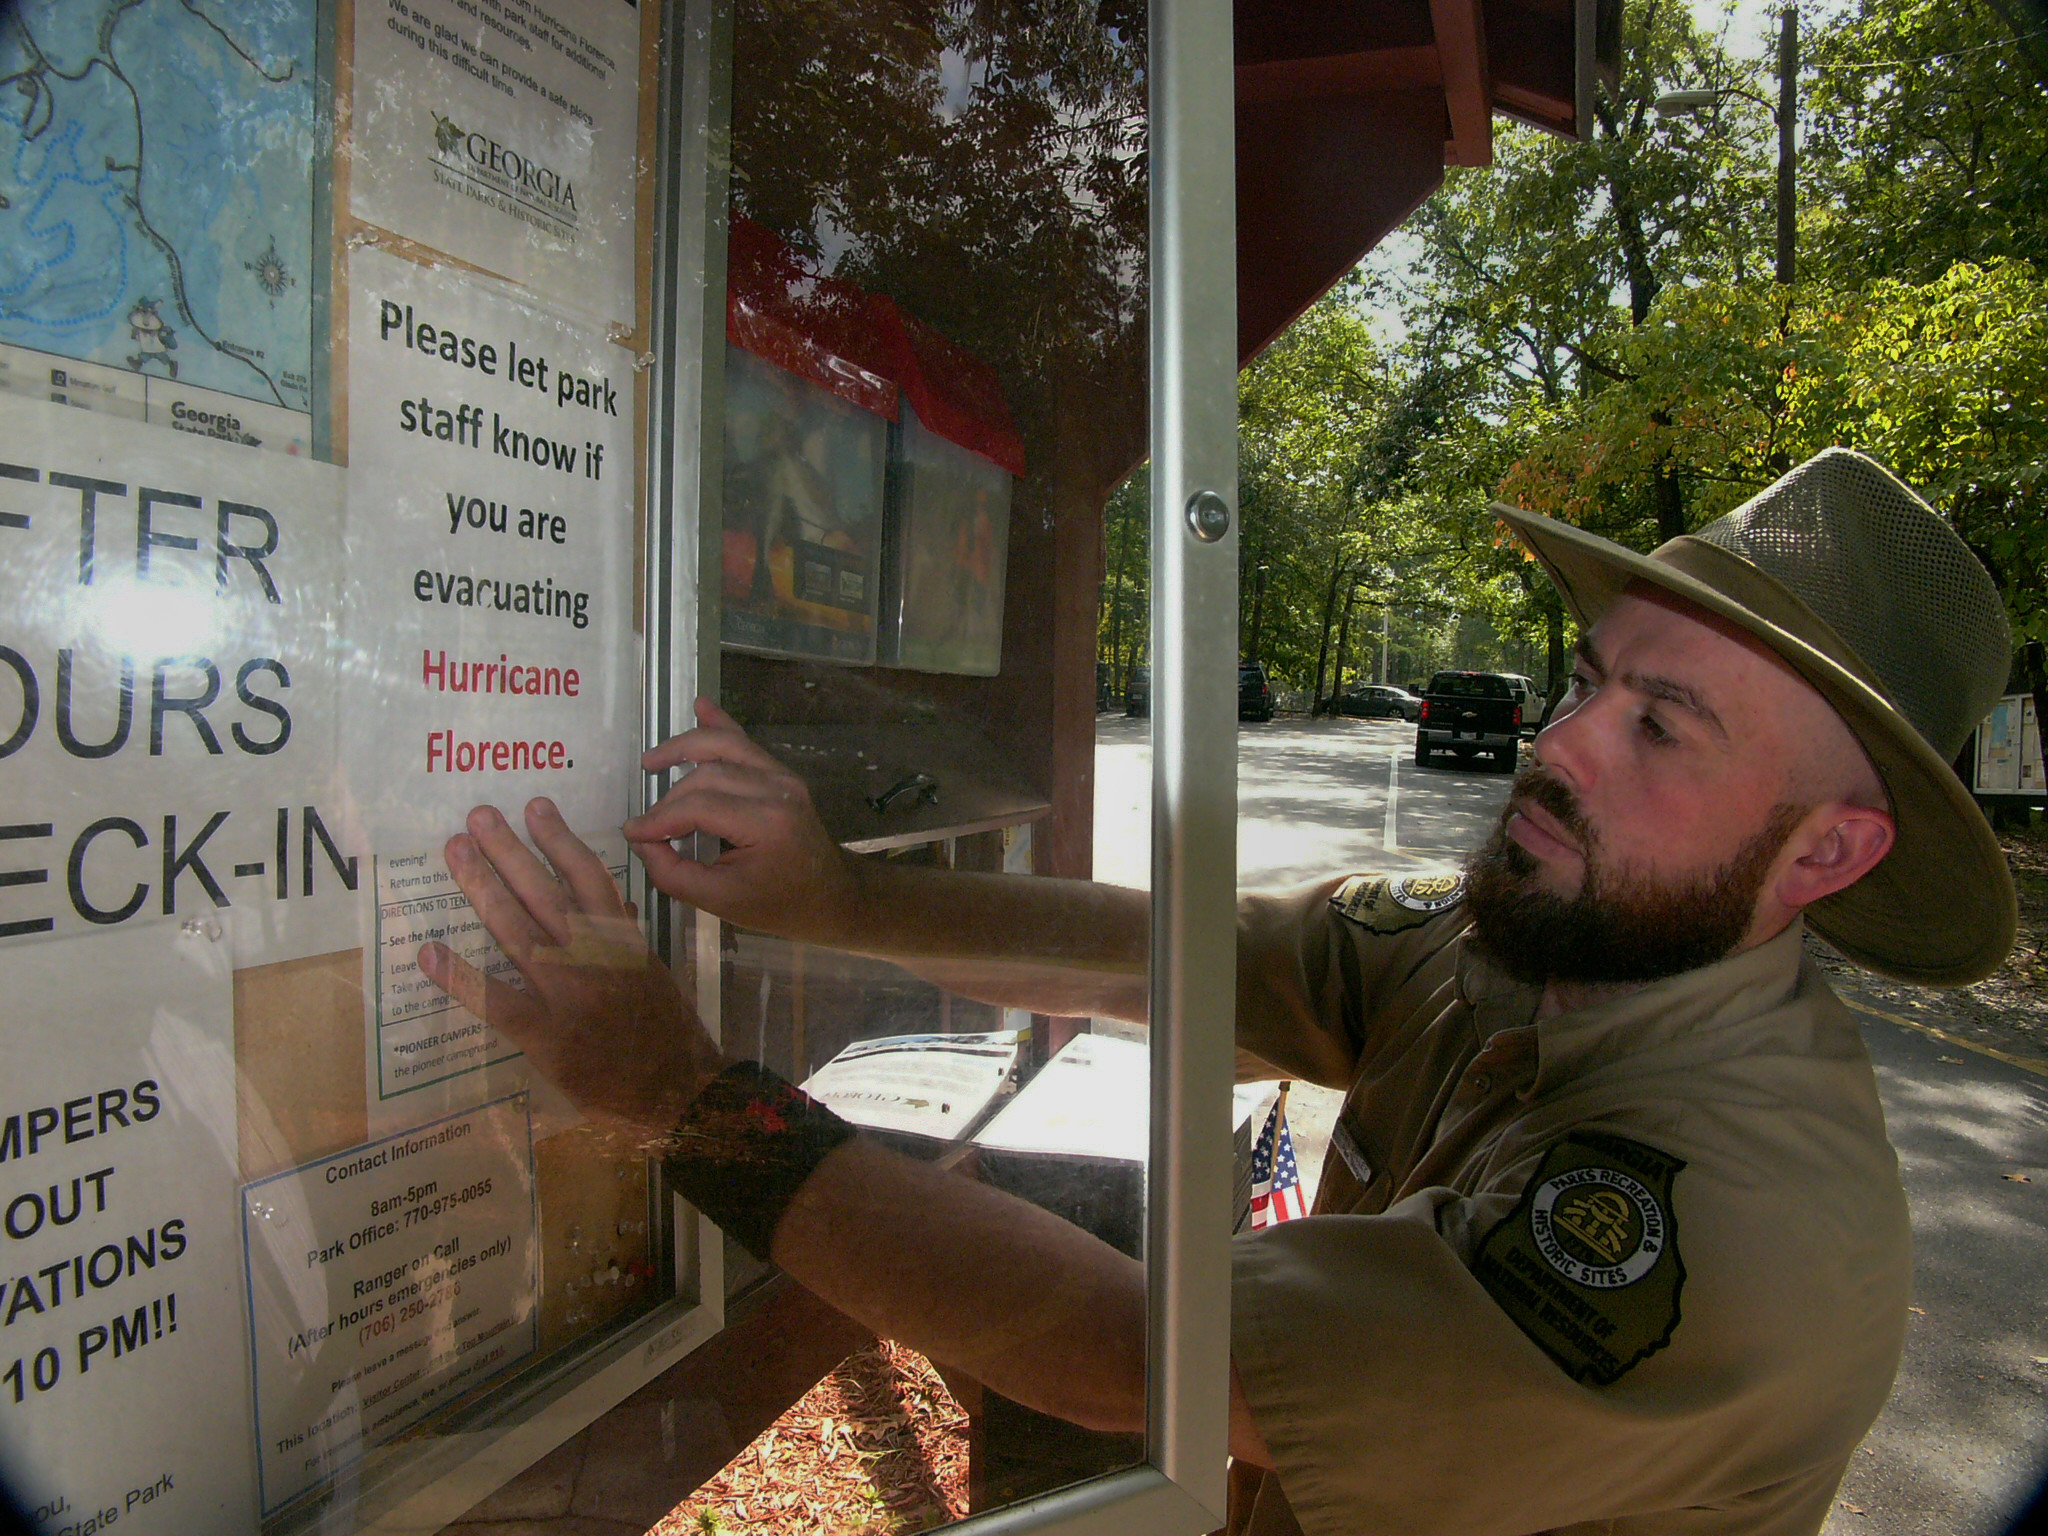 Shawn Kelley, assistant director of Red Top Mountain State Park, attaches a sign directing hurricane evacuees to check in at the visitor station.